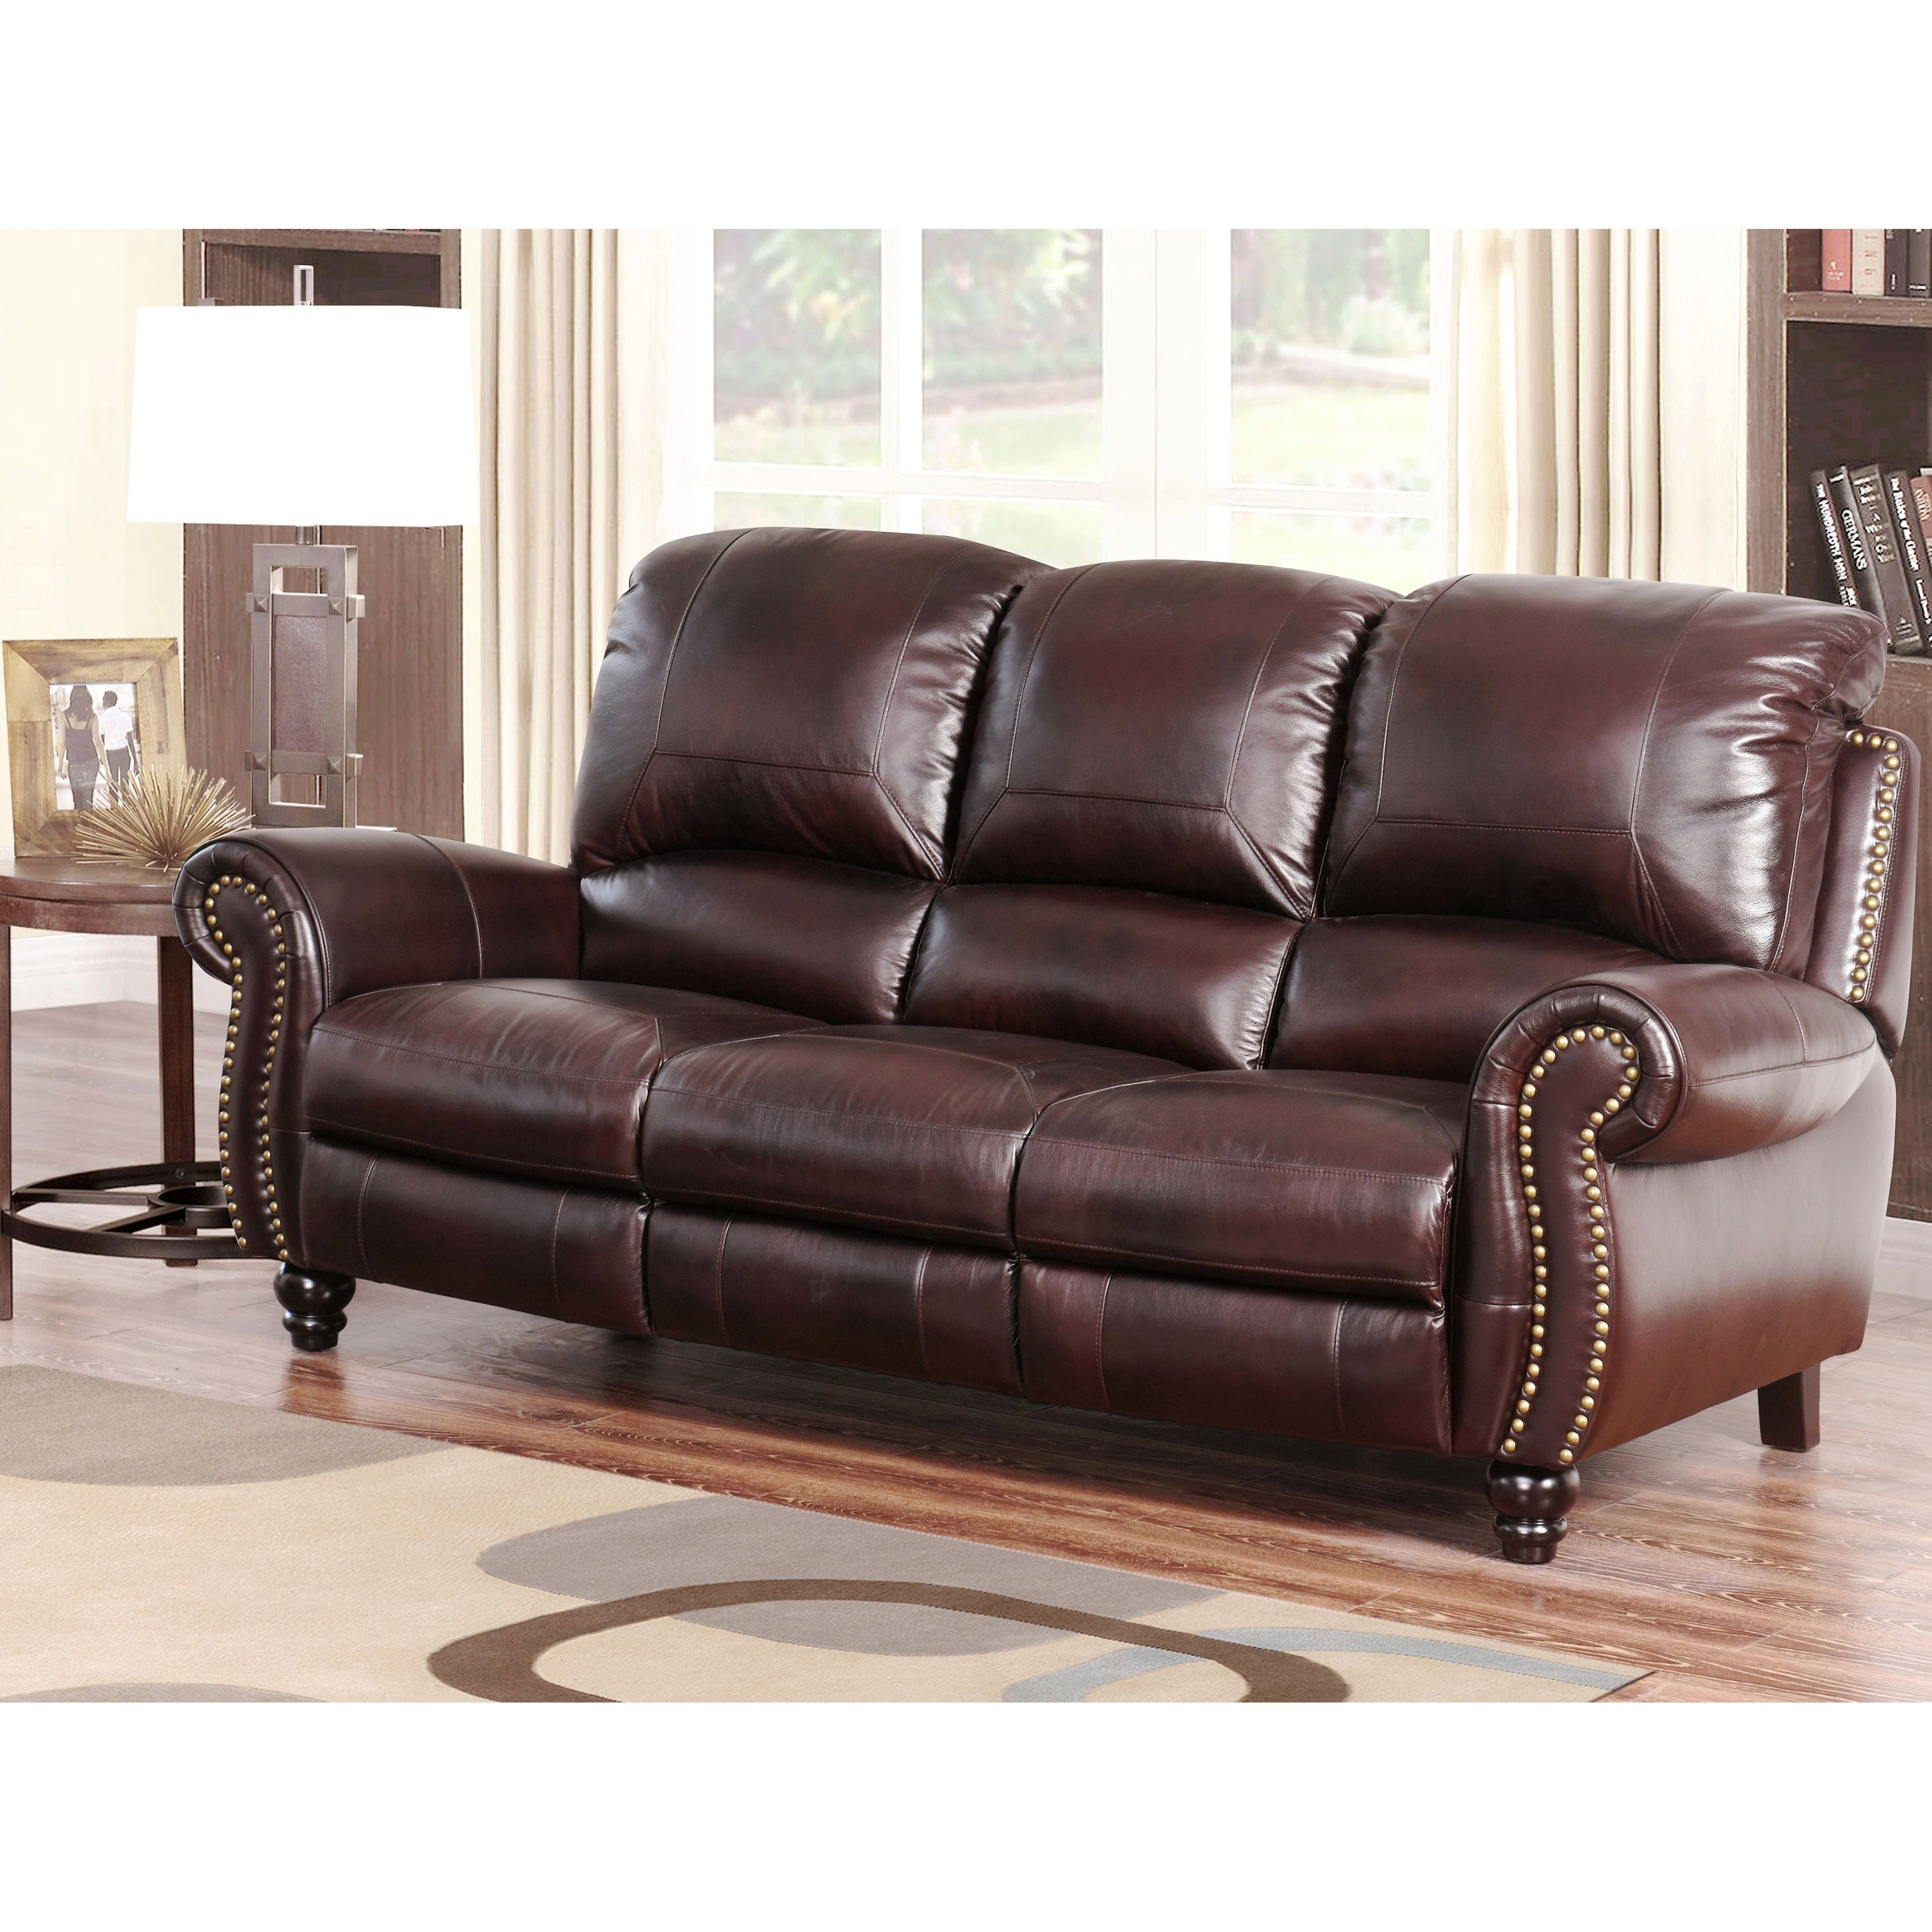 Astounding Abbyson Madison Top Grain Leather Pushback Reclining Sofa Alphanode Cool Chair Designs And Ideas Alphanodeonline